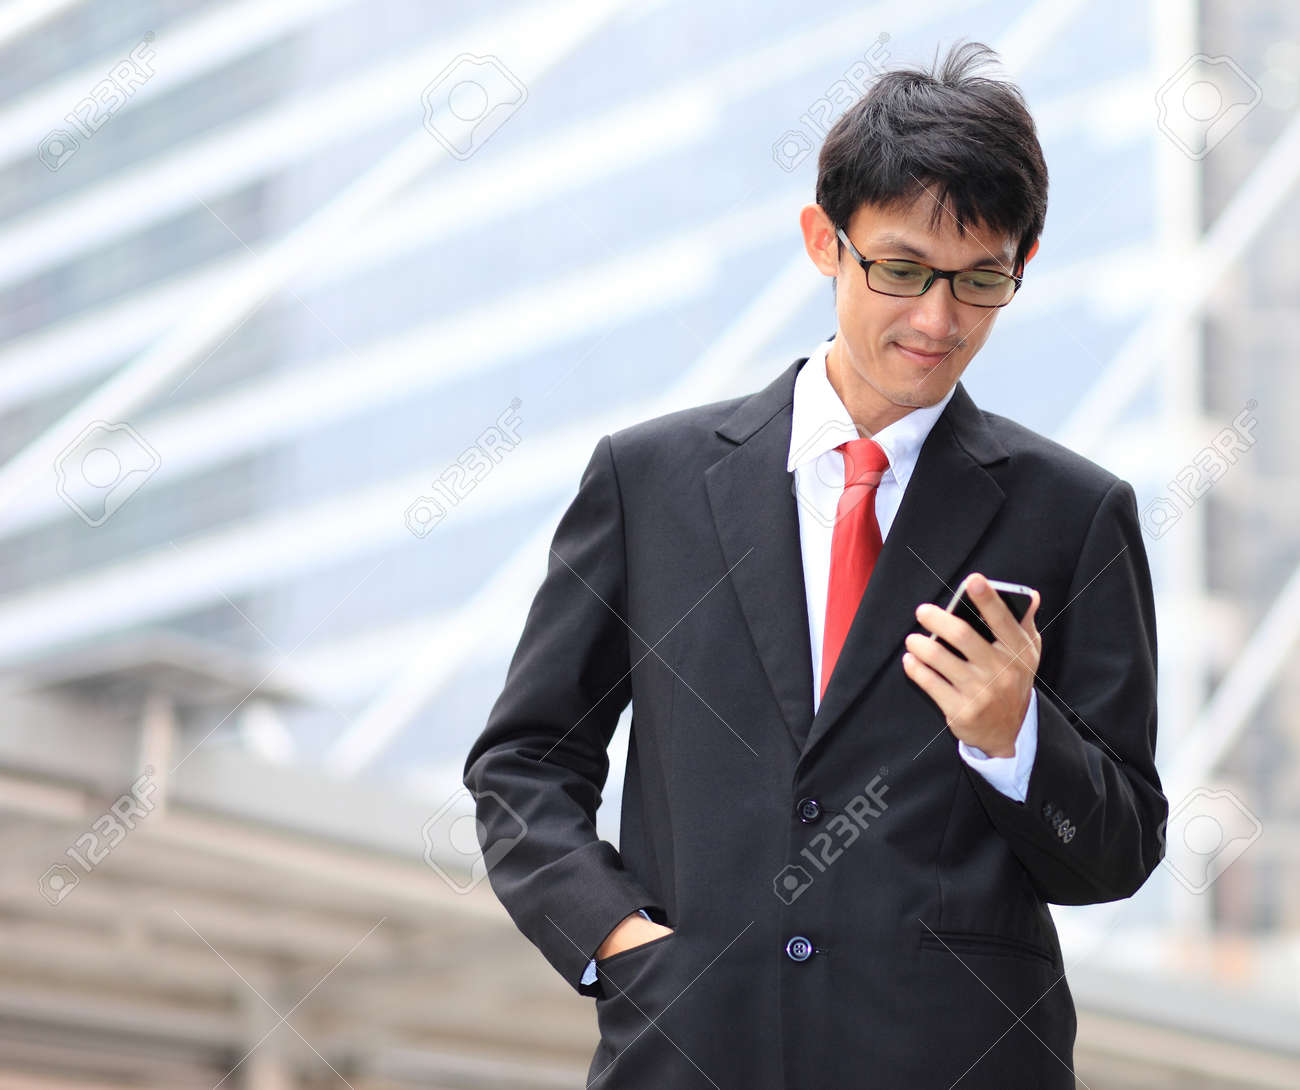 84e1a2107bb Man on smart phone - young business man. Casual urban professional  businessman using smartphone smiling